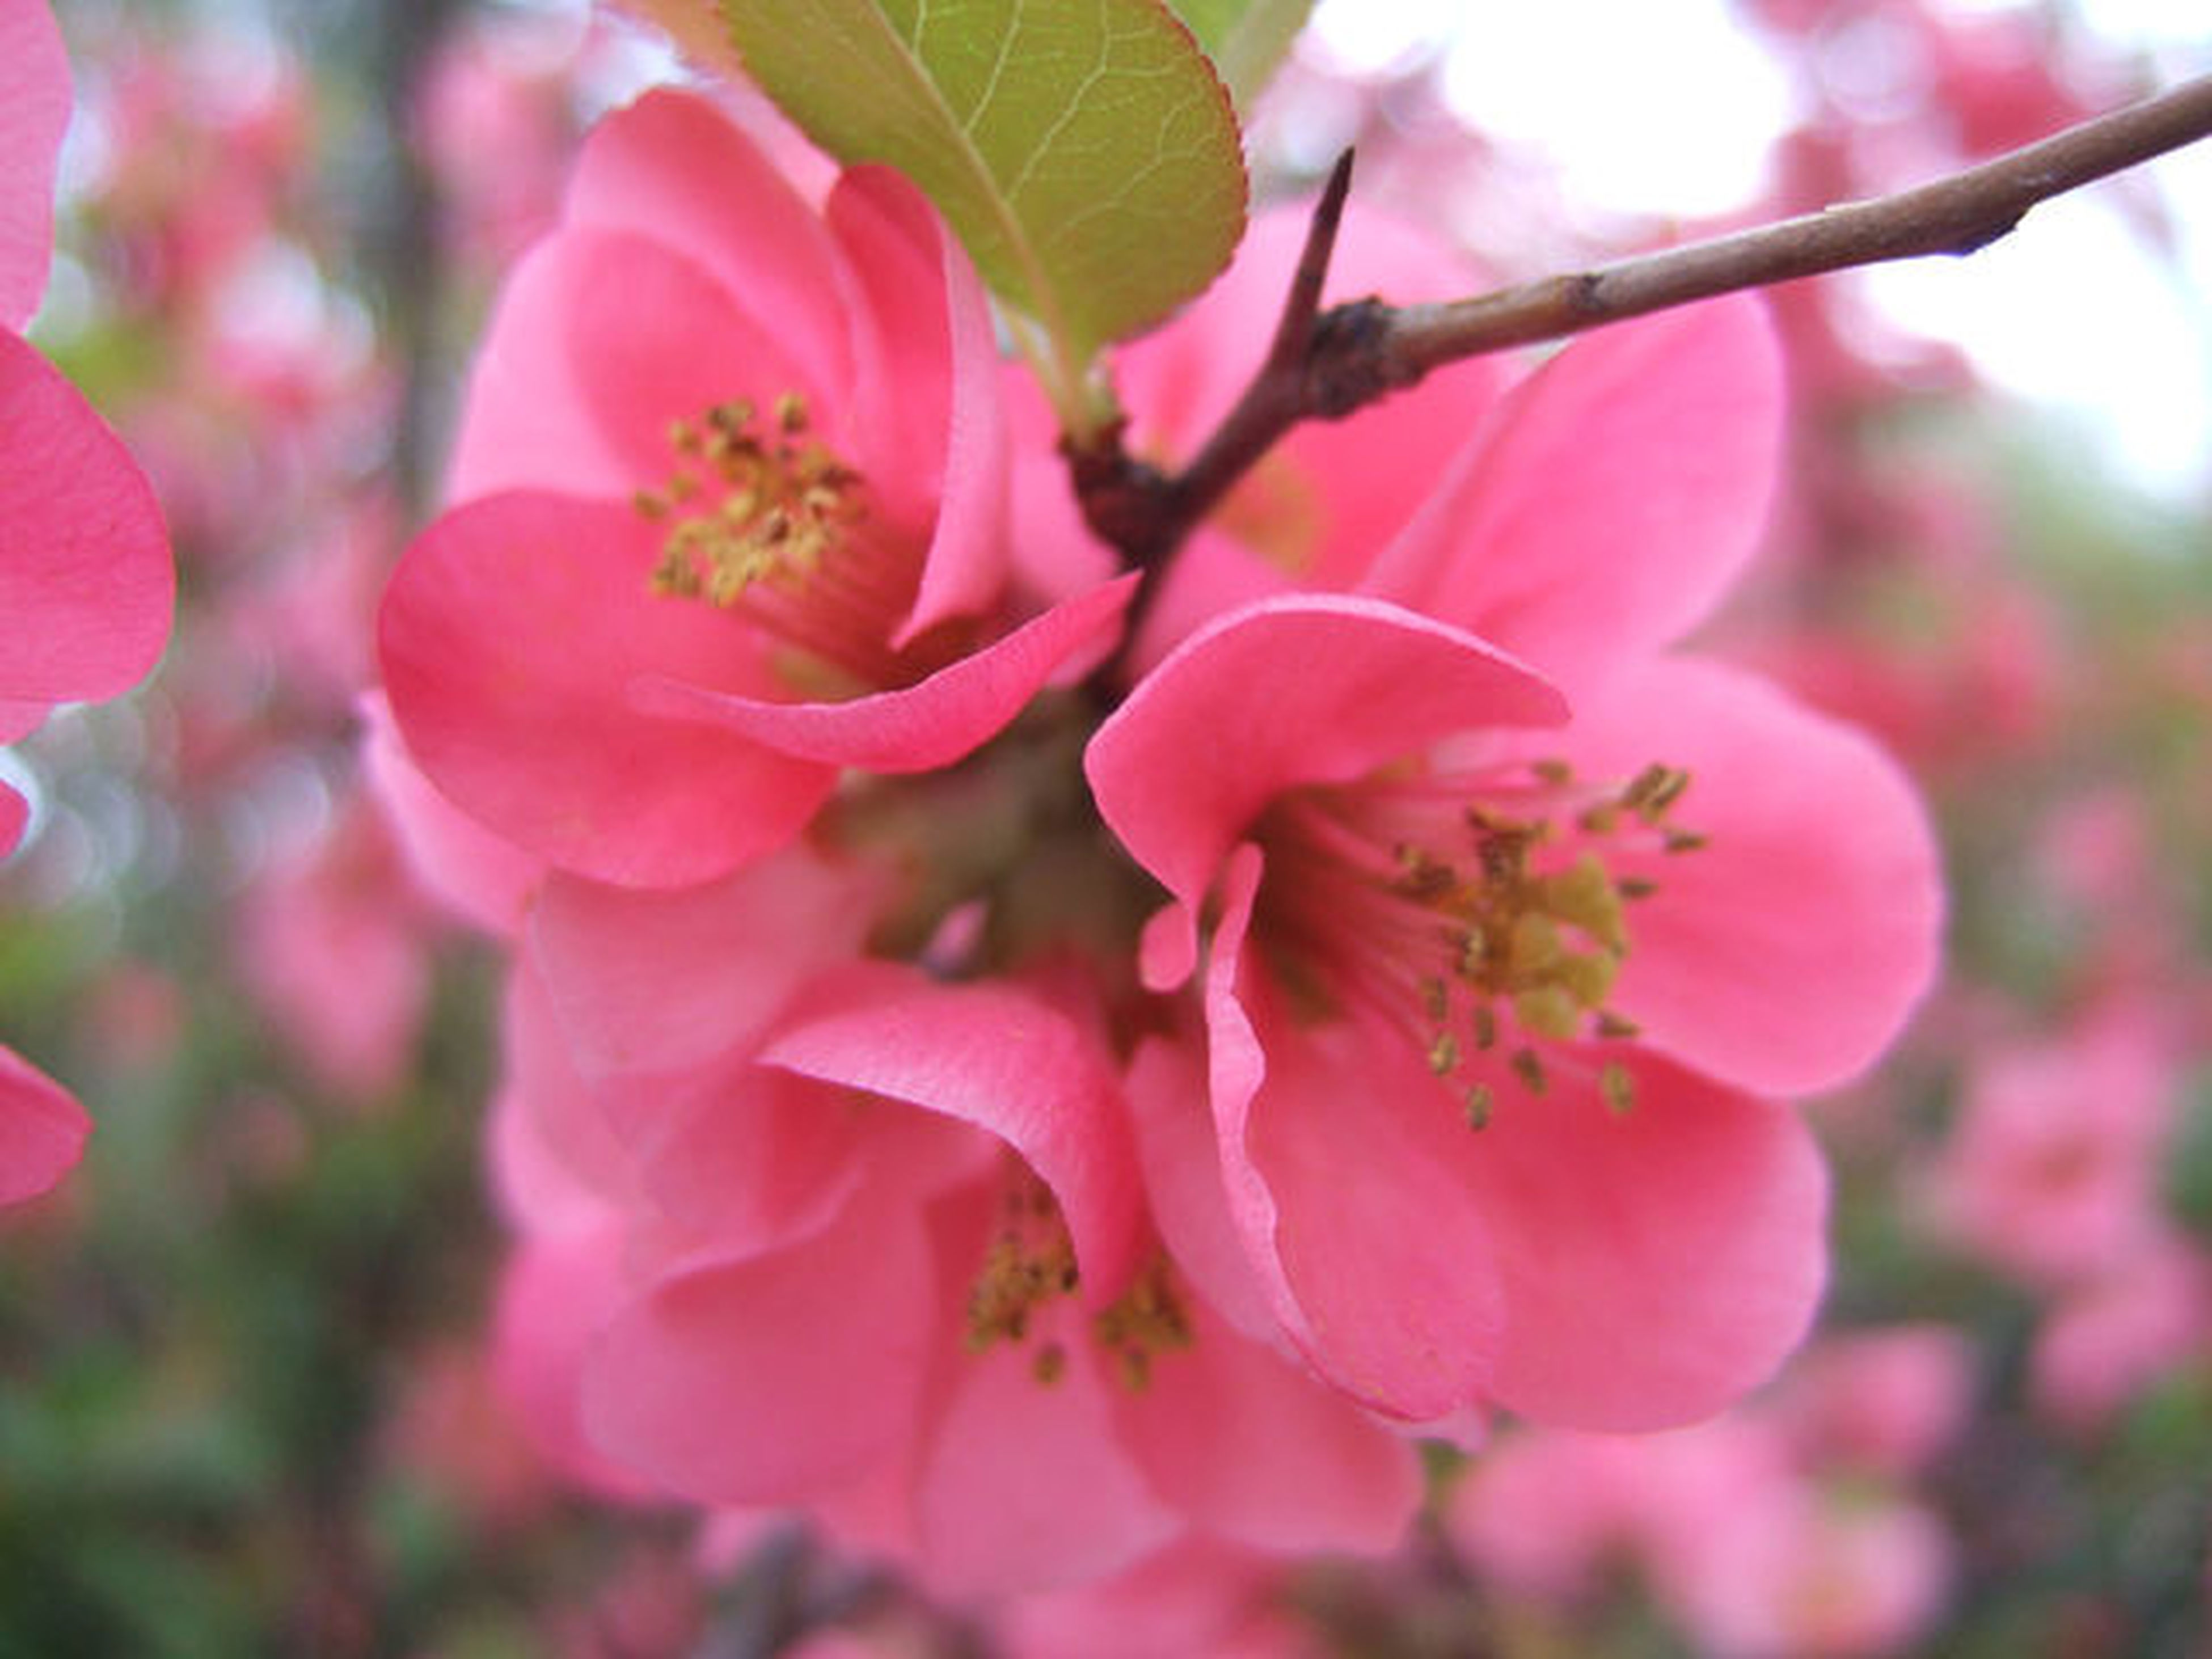 flower, freshness, pink color, growth, focus on foreground, fragility, beauty in nature, branch, close-up, petal, nature, tree, blossom, twig, blooming, in bloom, day, flower head, pink, outdoors